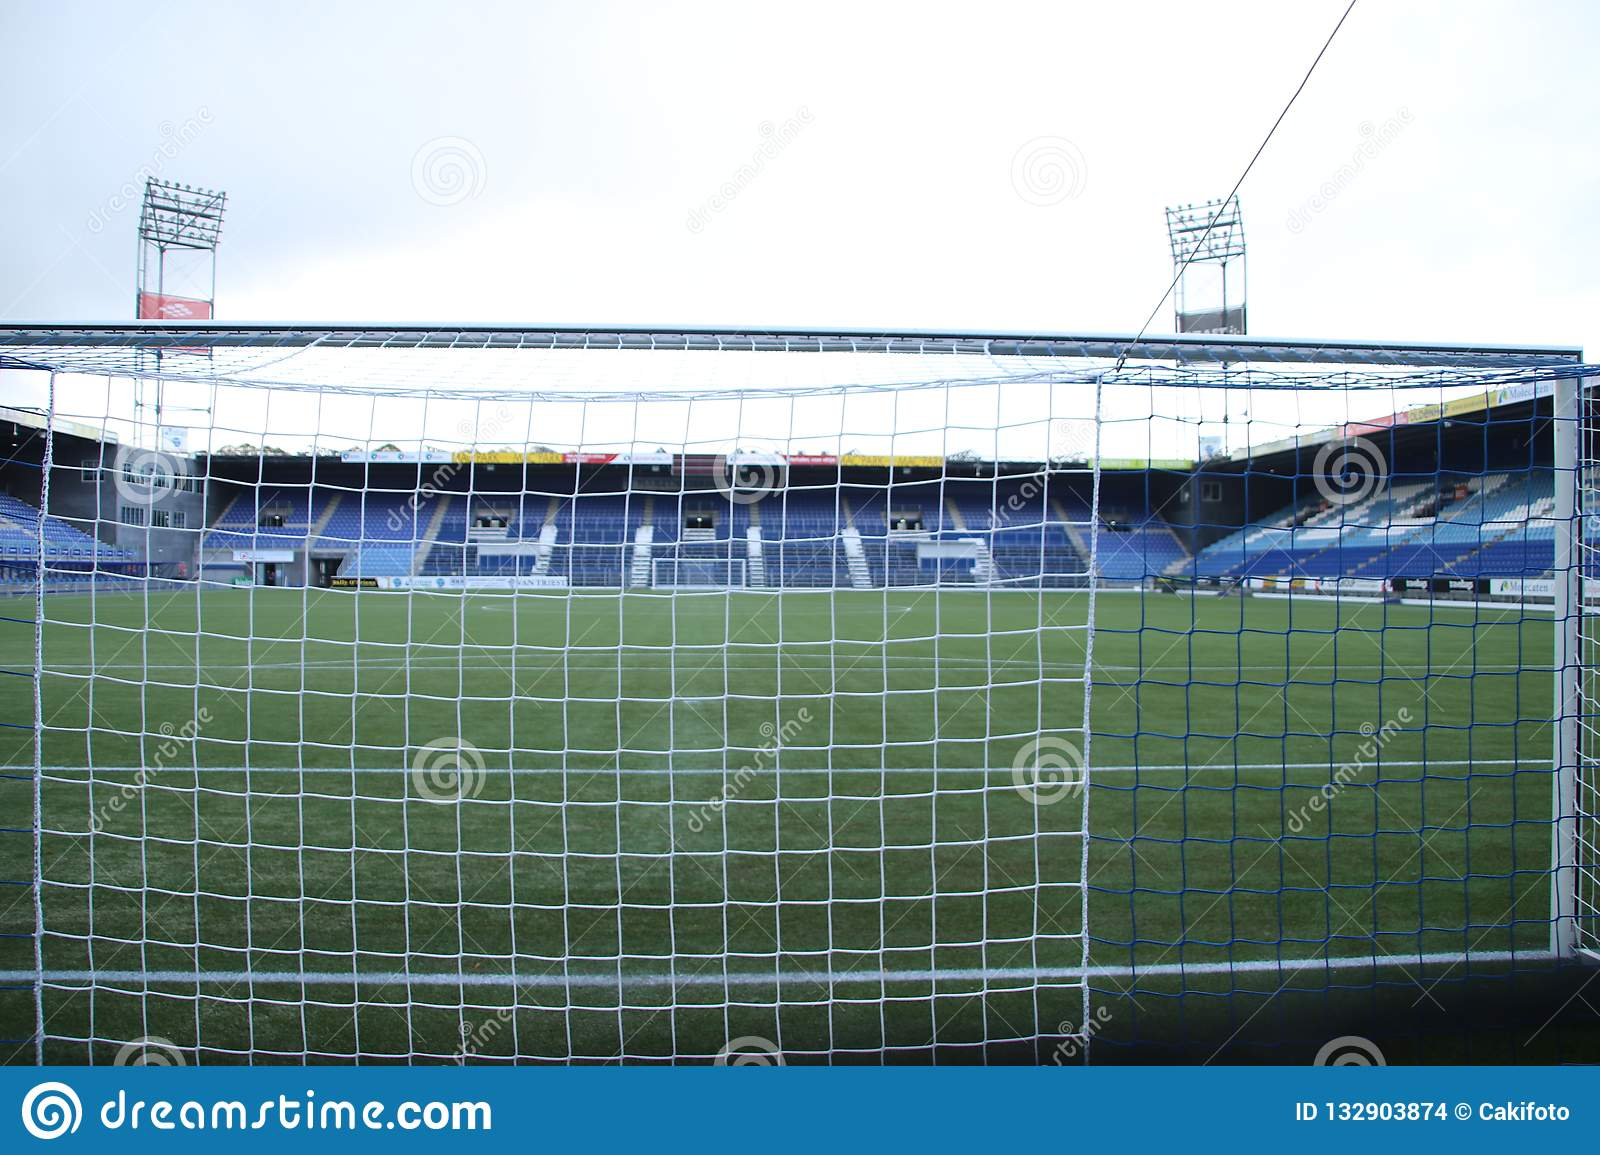 Footbal Soccer Stadium Of The Eredivisie Team Pec Zwolle In The Netherlands On The Inside Editorial Stock Image Image Of Zwolle Eredivisie 132903874